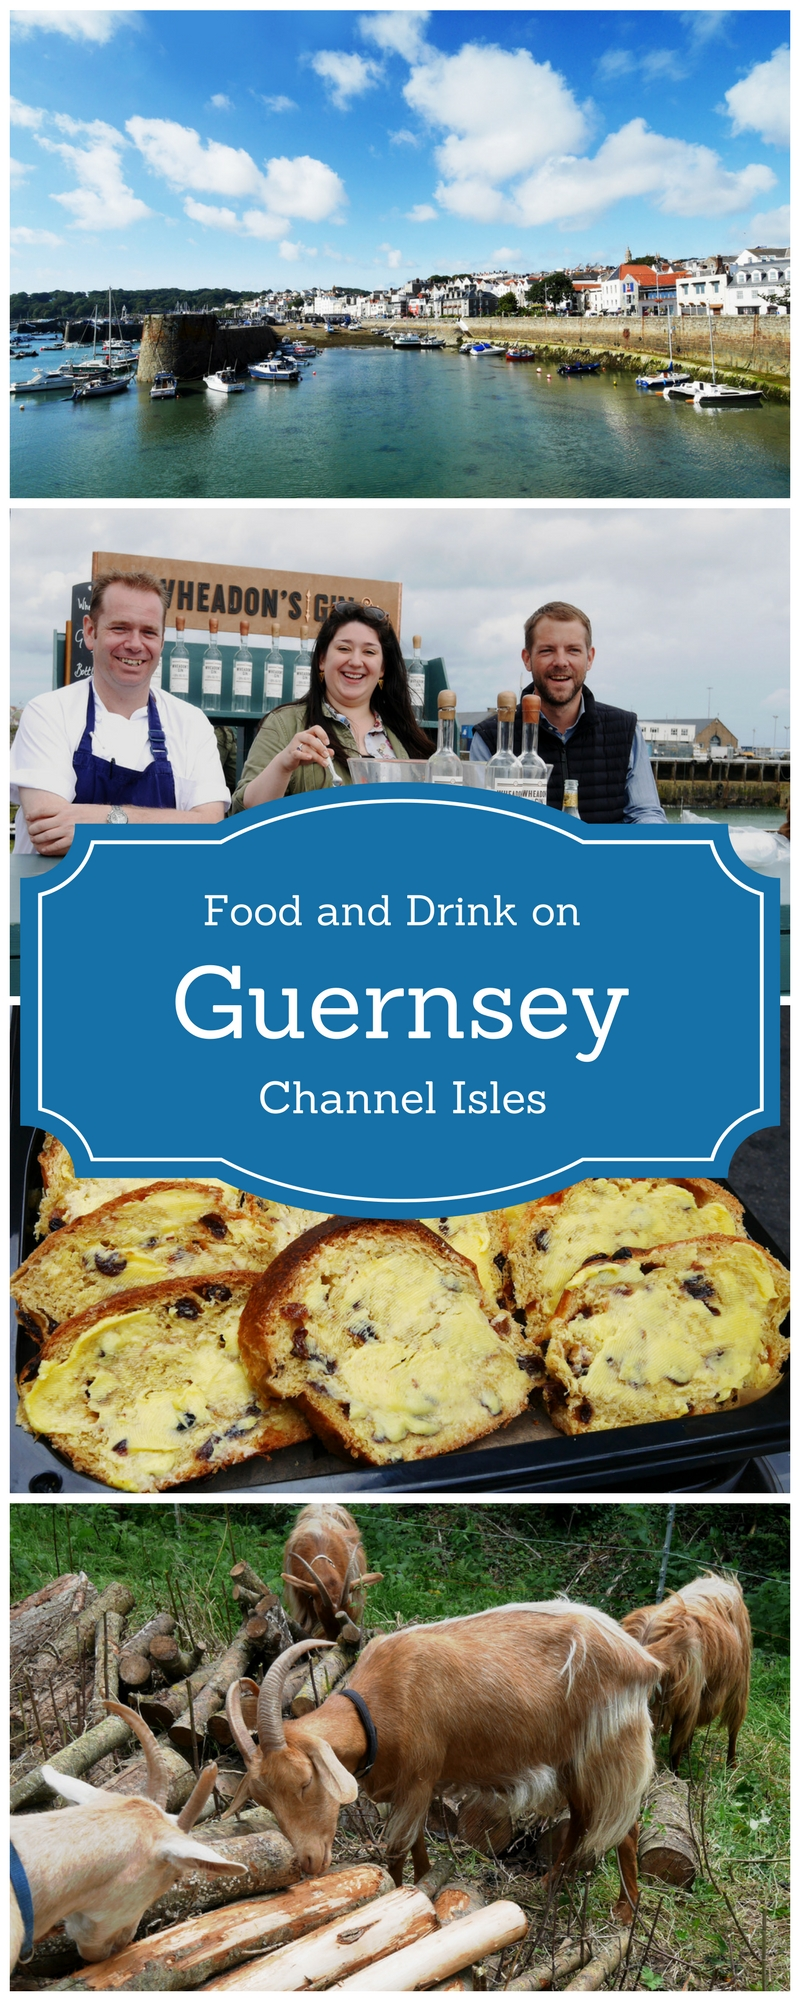 Food and drink on Guernsey - Seafront Sunday at St Peter's Port Guernsey - a preview of the Guernsey Food Festival